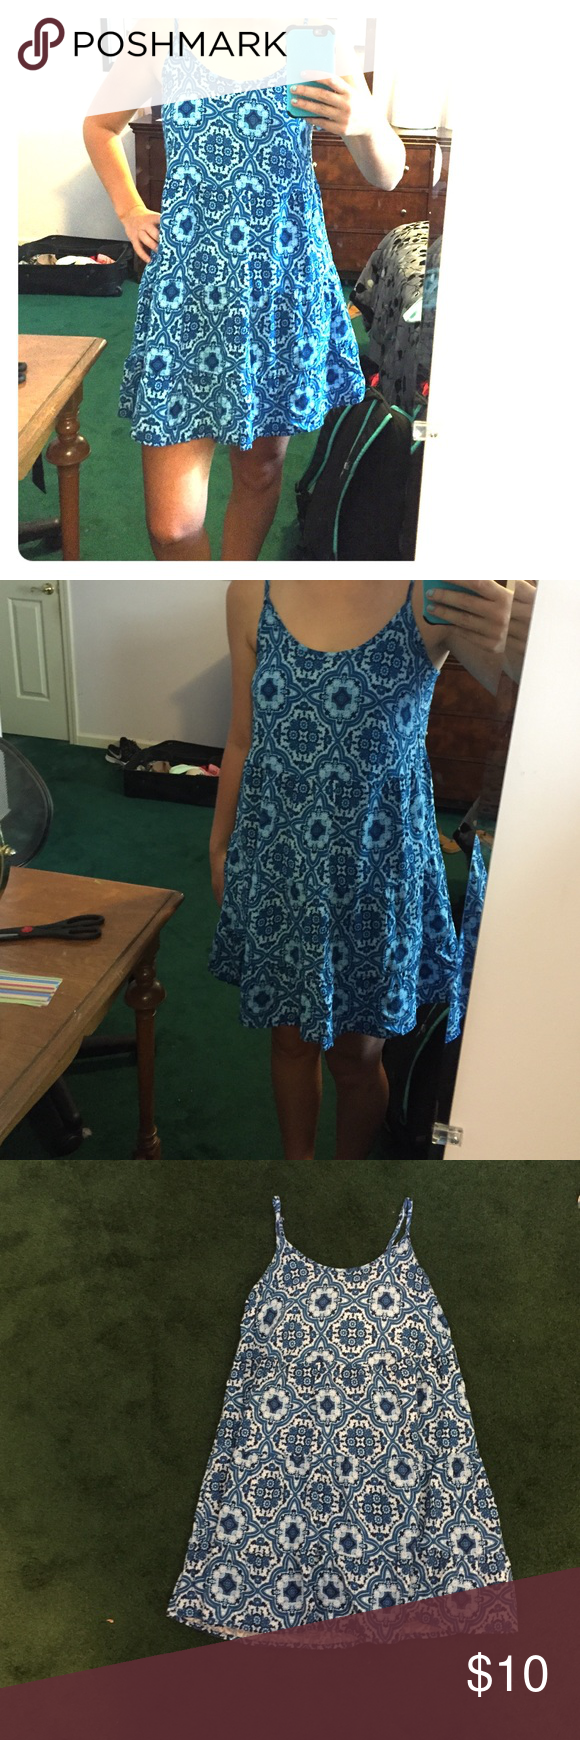 Blue patterned festival dress So cute!!! Worn one time. 🎁will accept best offer🎁 J. Crew Dresses